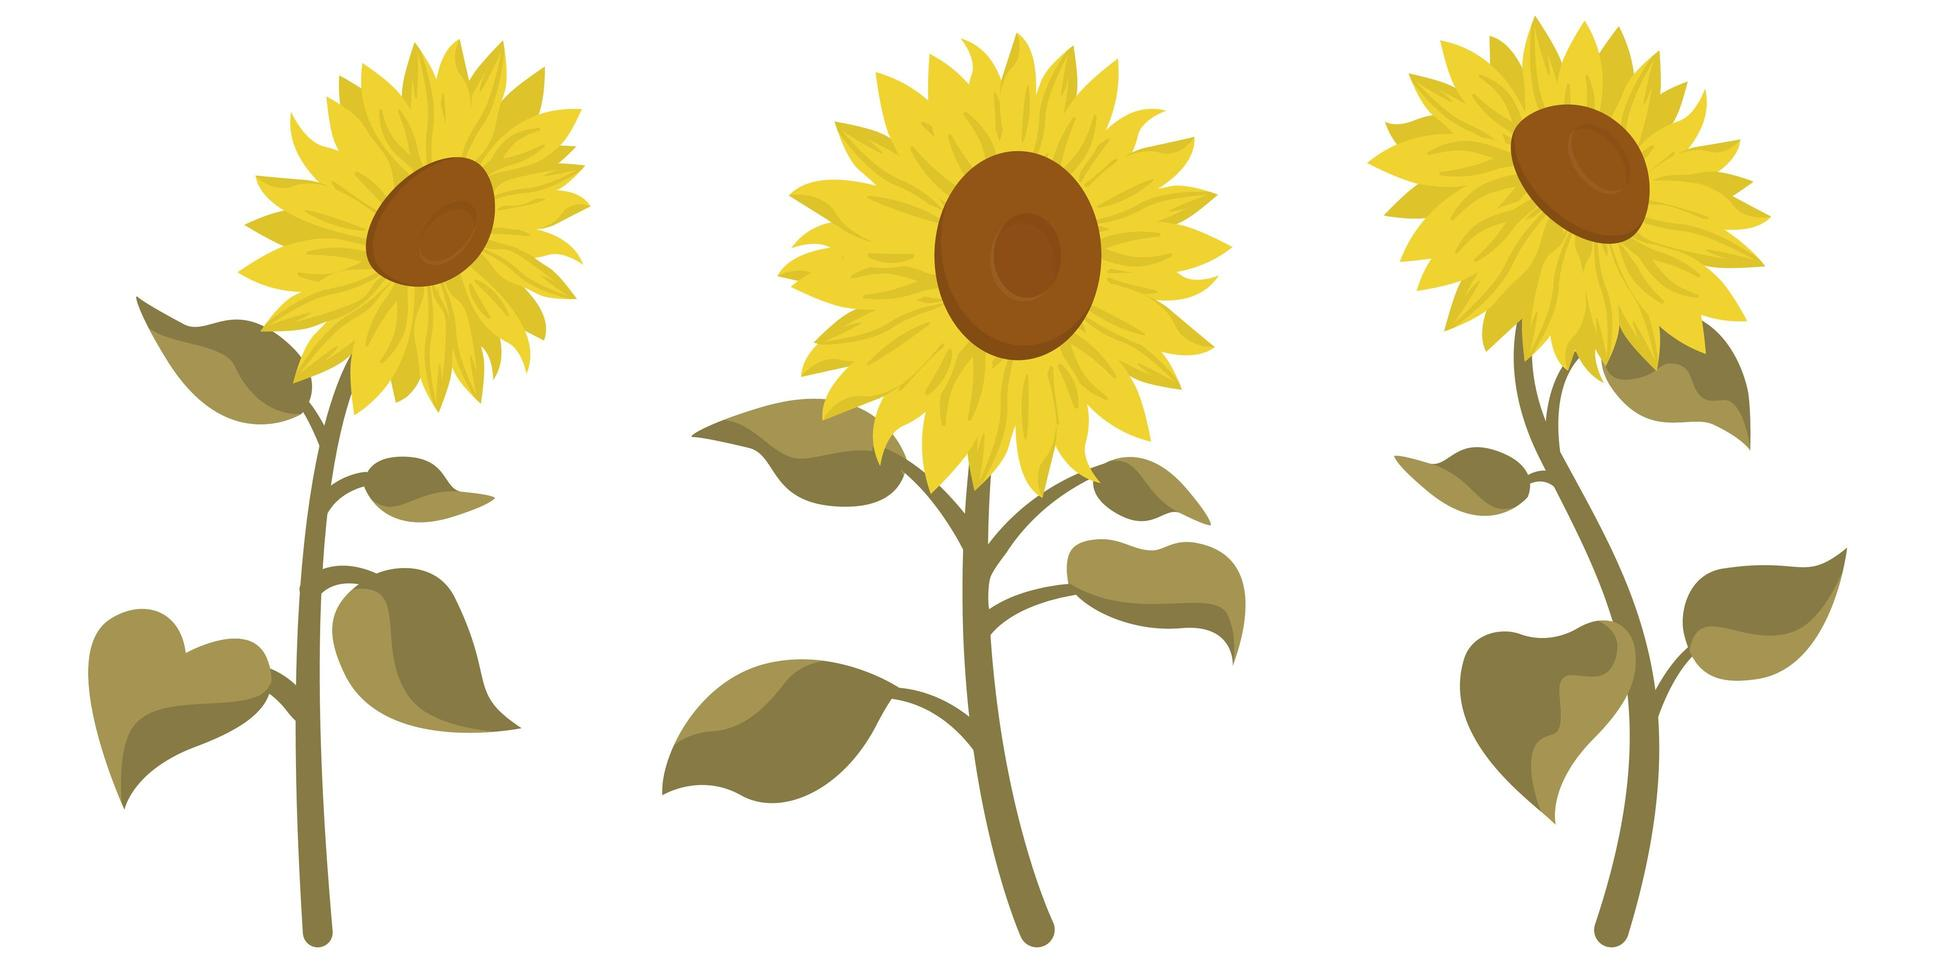 Sunflower In Different Positions Download Free Vectors Clipart Graphics Vector Art